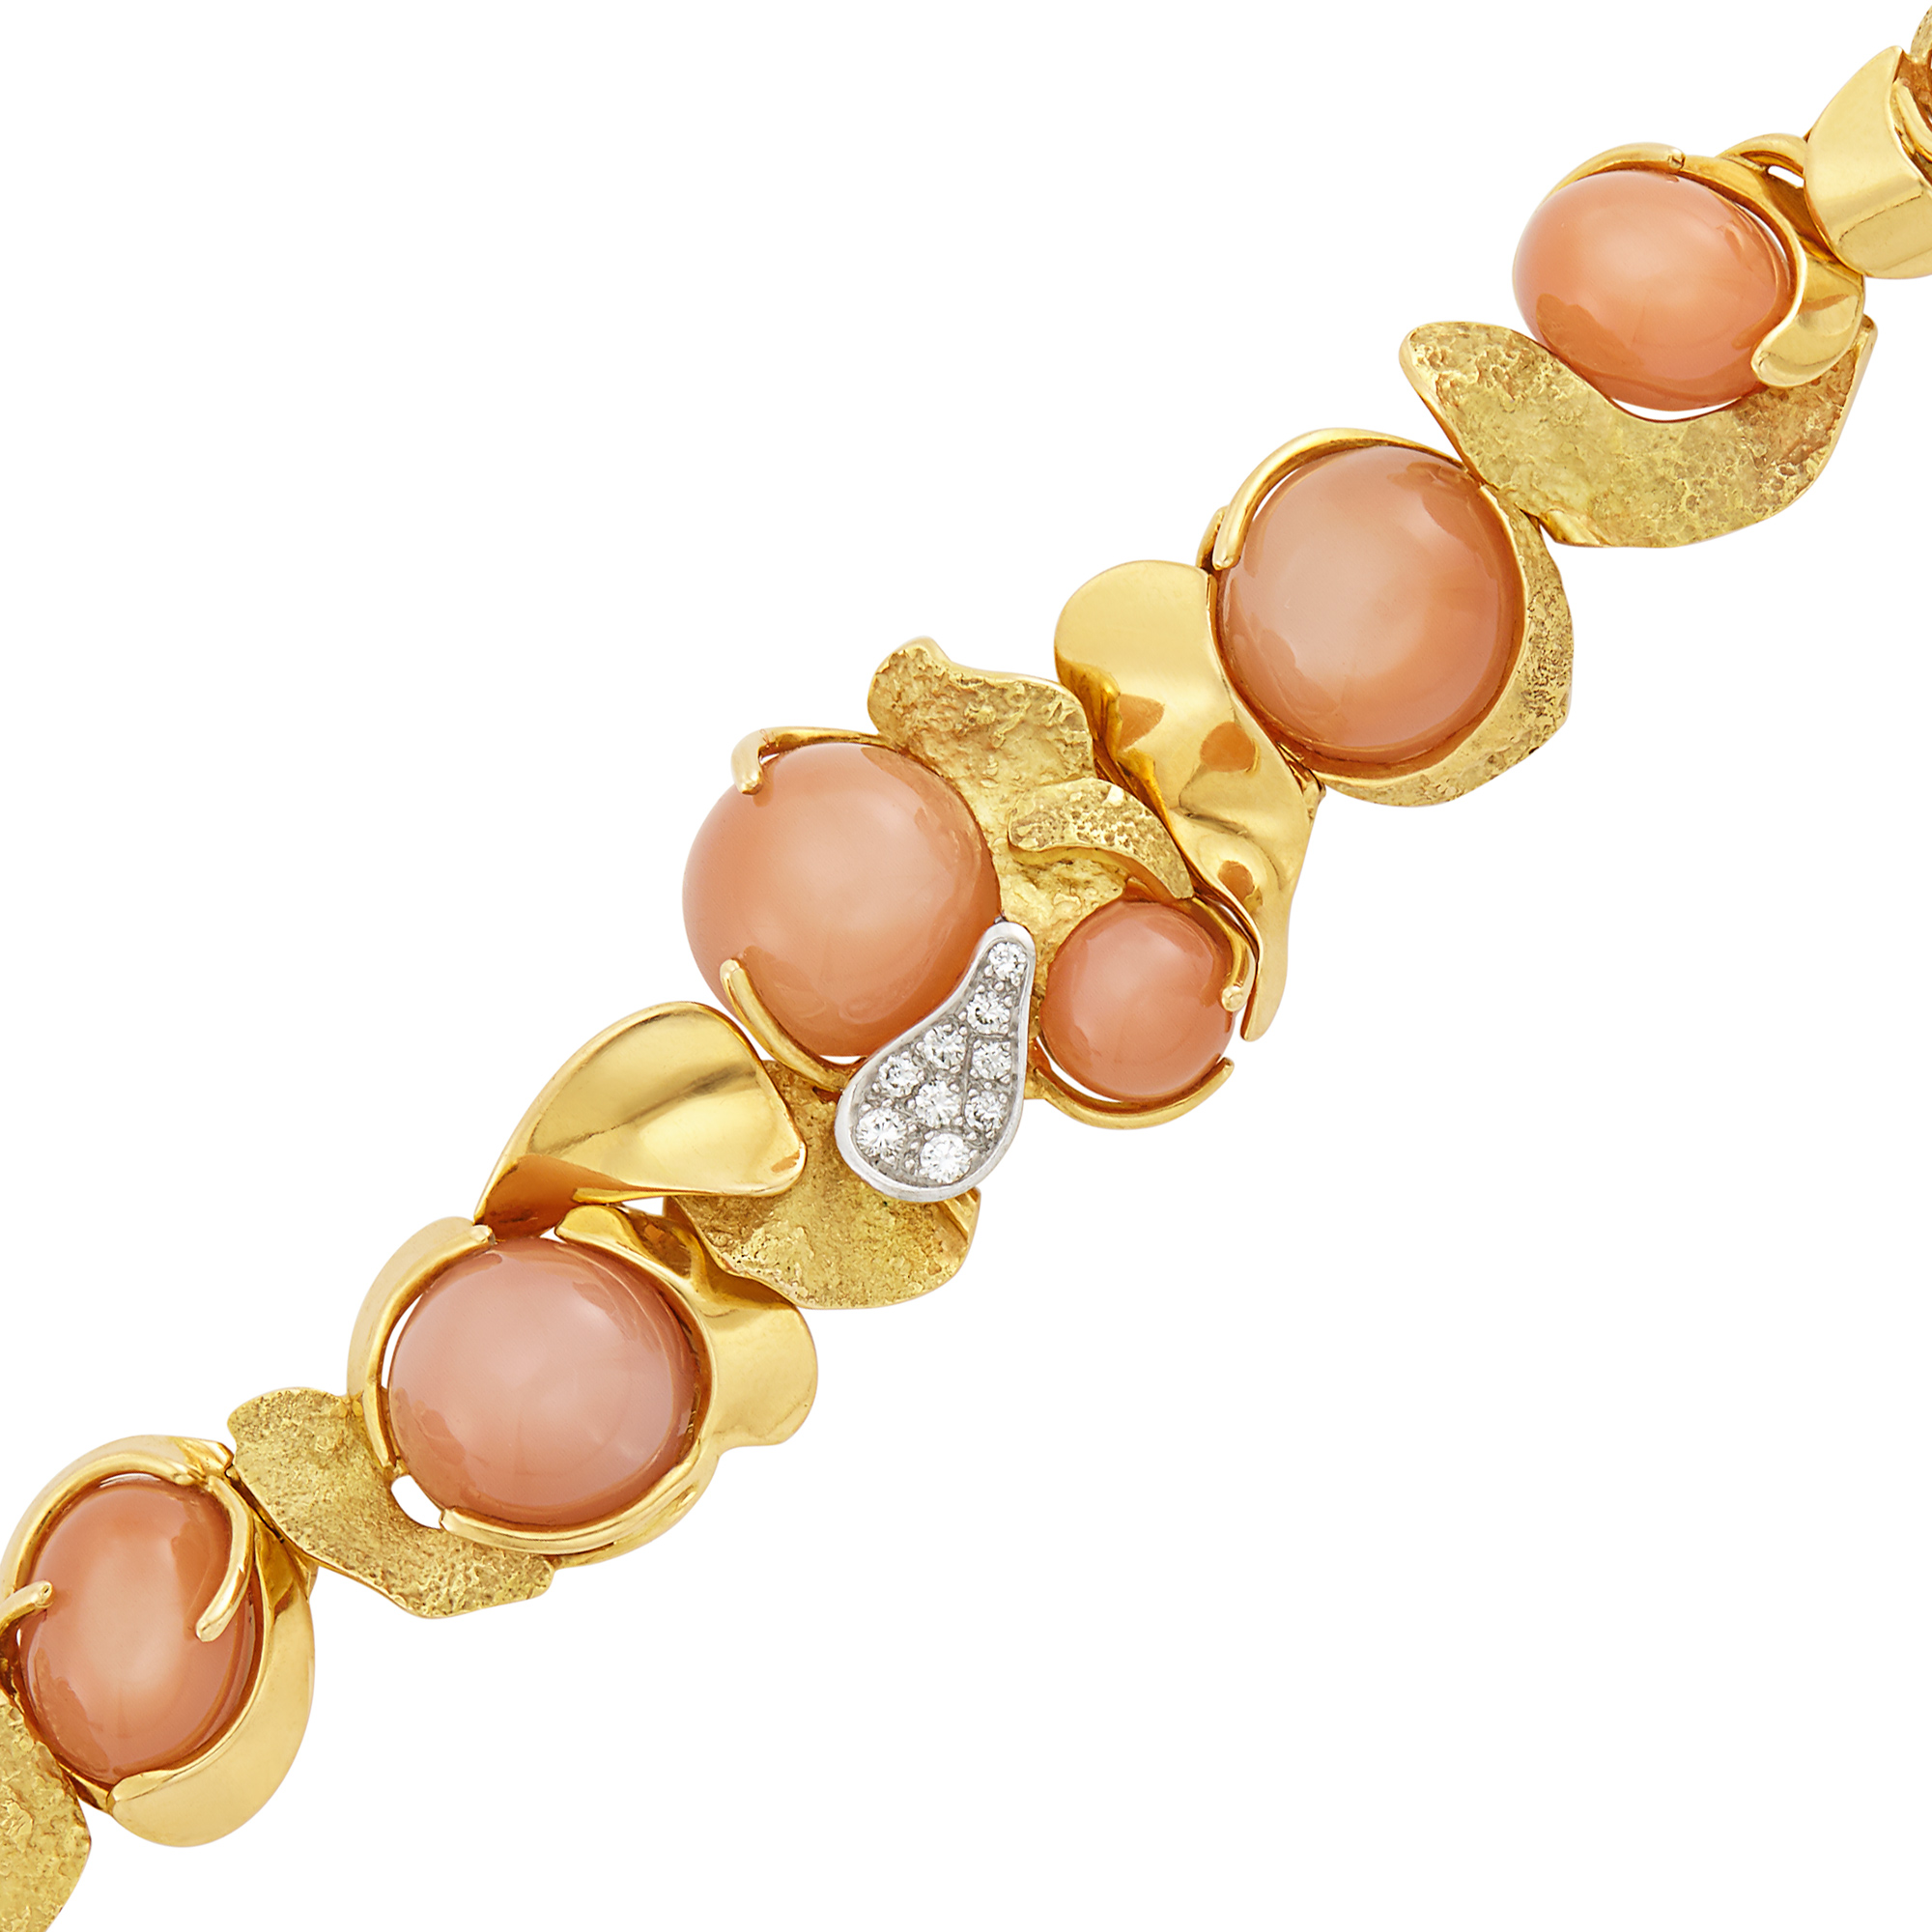 Lot image - Gold, Peach Moonstone and Diamond Bracelet, Julia Plana